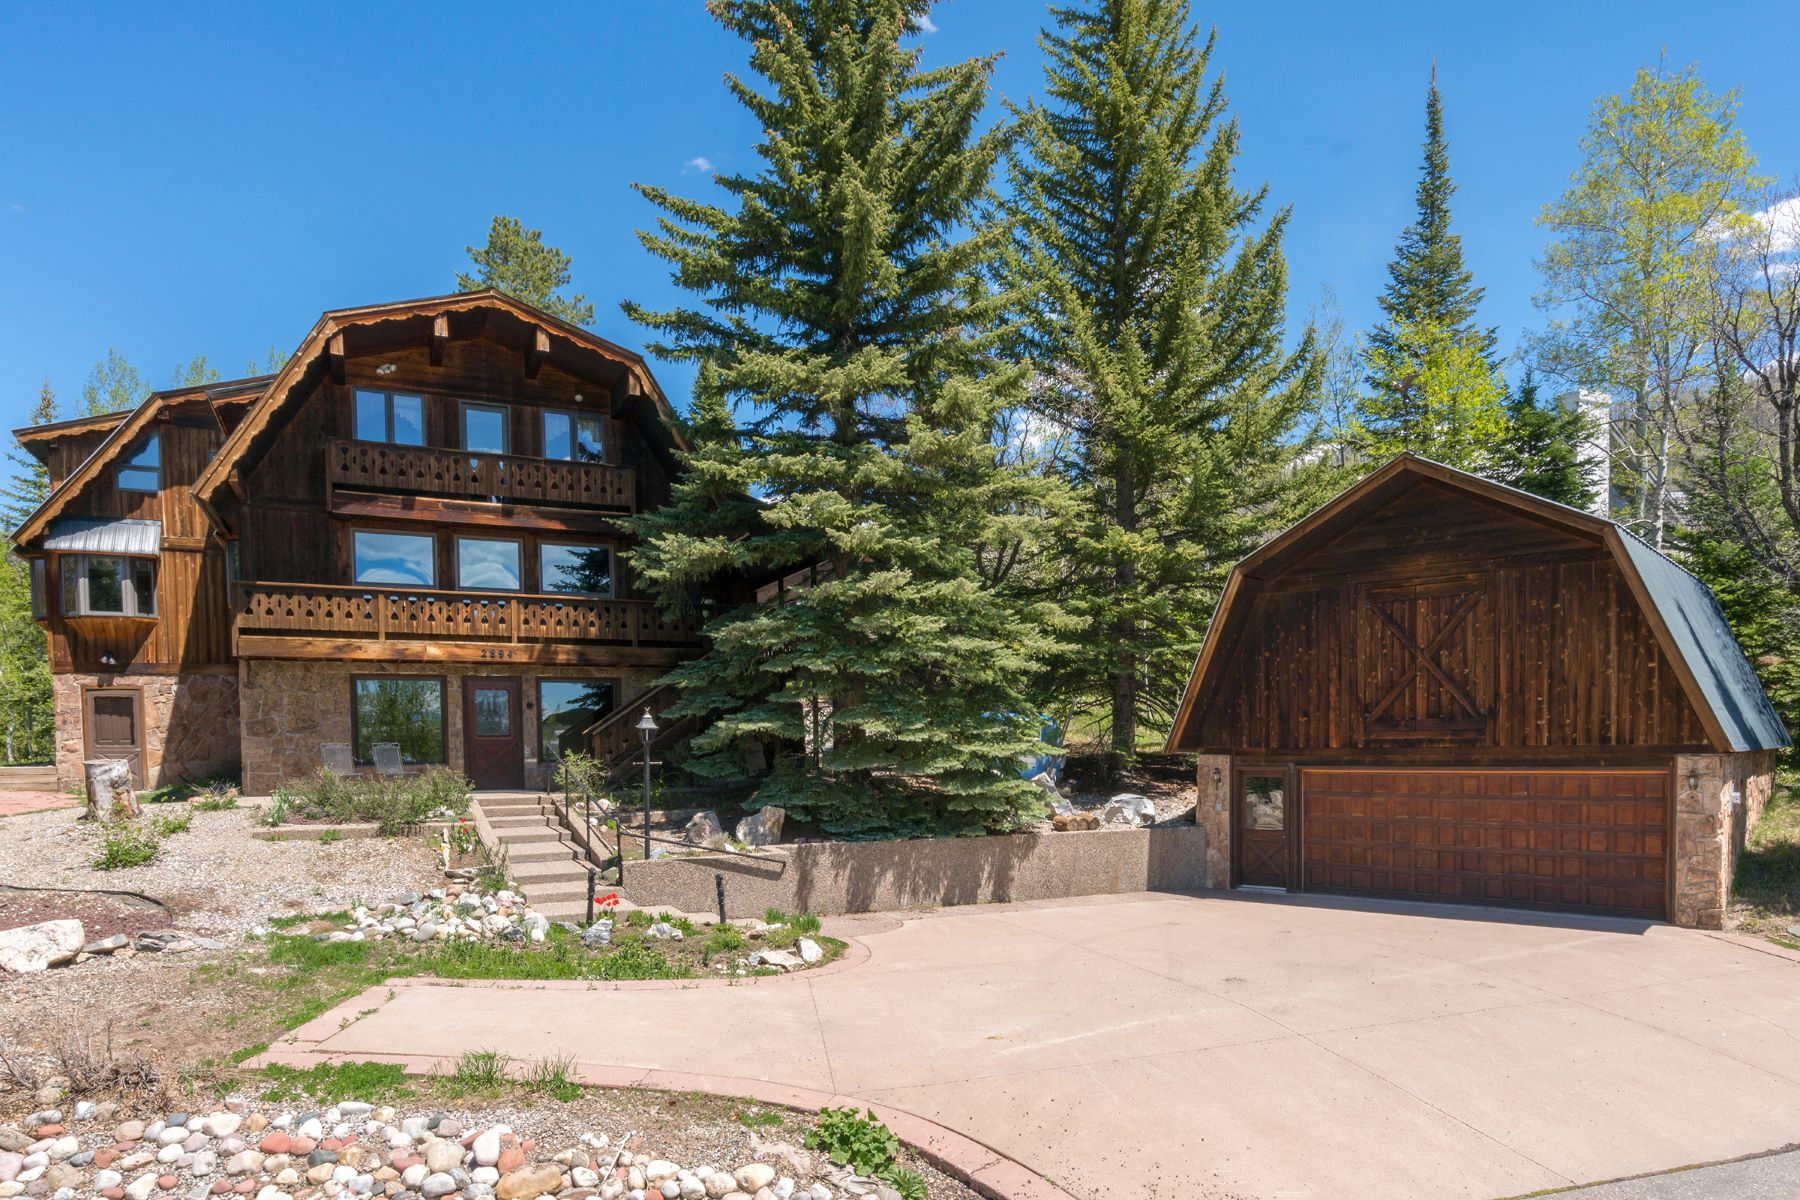 Single Family Home for Sale at Burgess Creek Ski Chalet 2894 Burgess Creek Road Steamboat Springs, Colorado 80487 United States